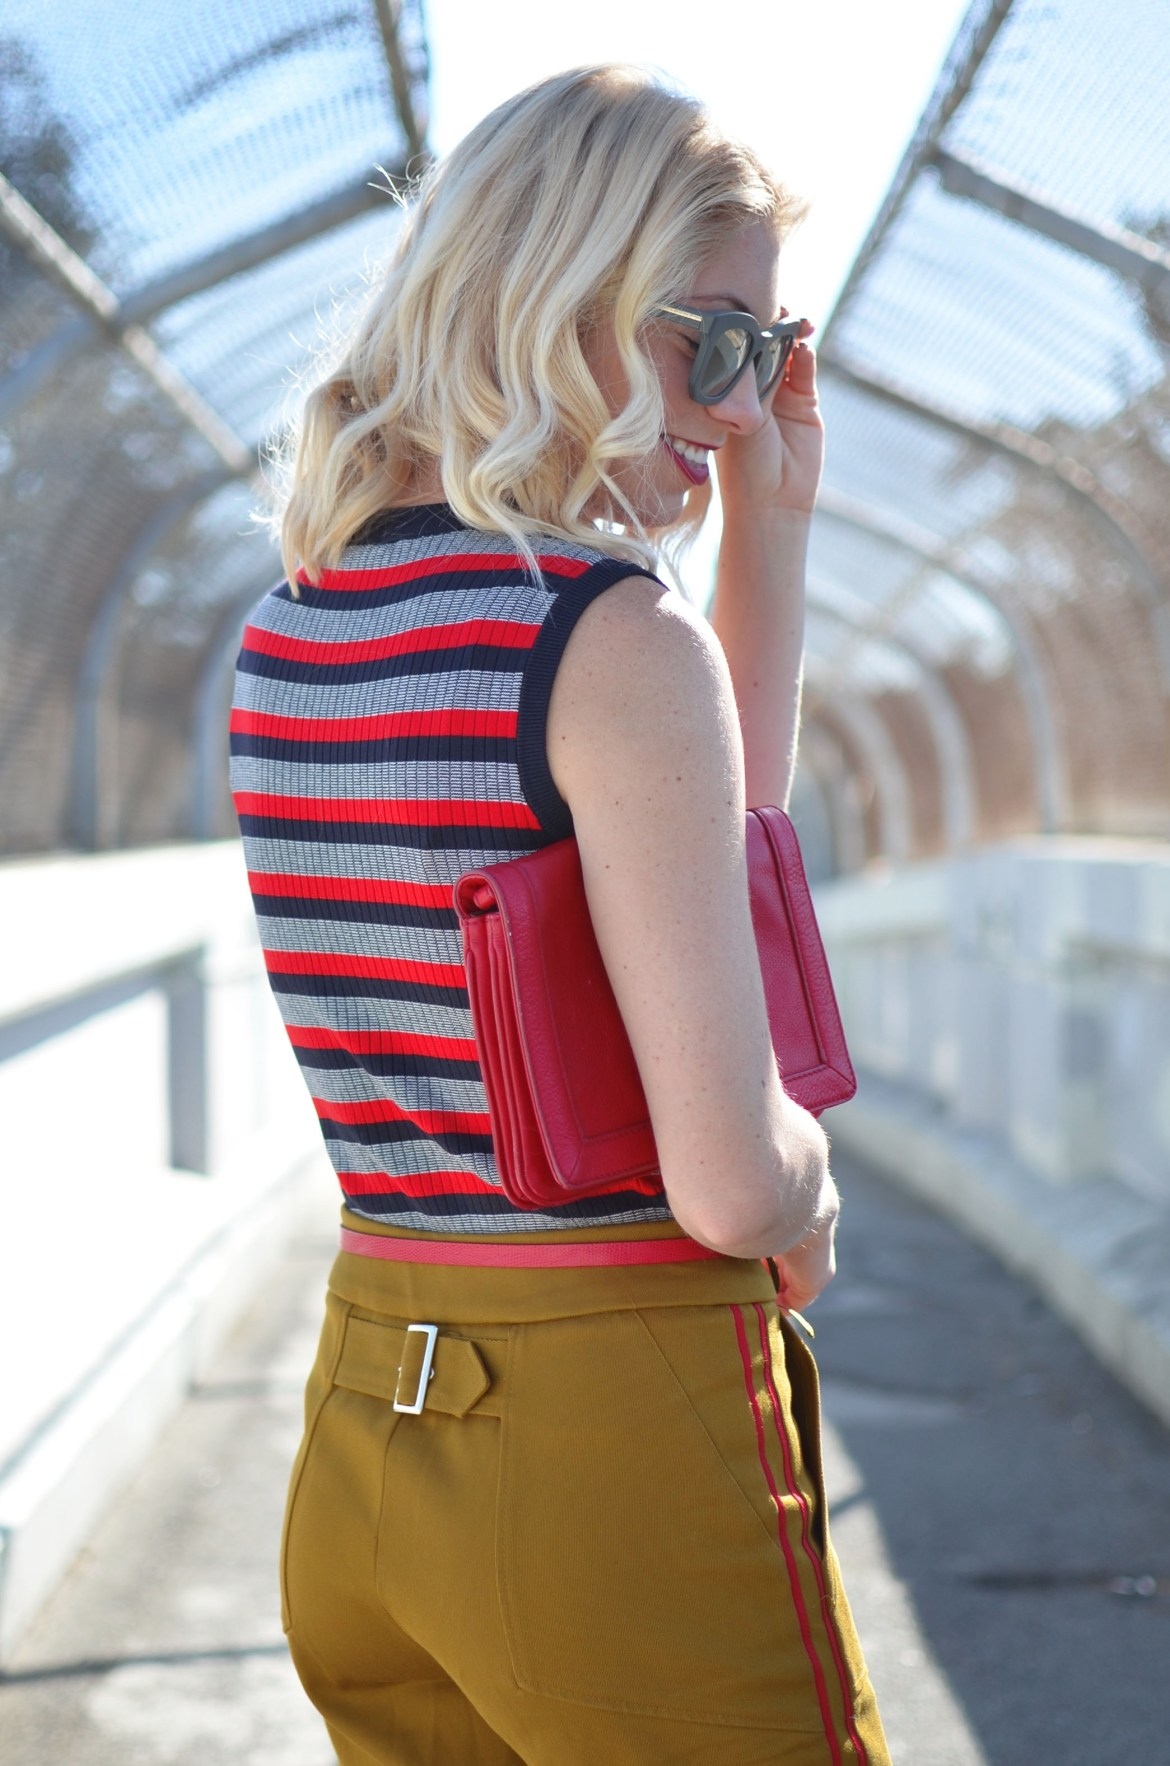 Stefanie of The Style Safari wears a military casual outfit with striped knit tank and pops of red heels and clutch